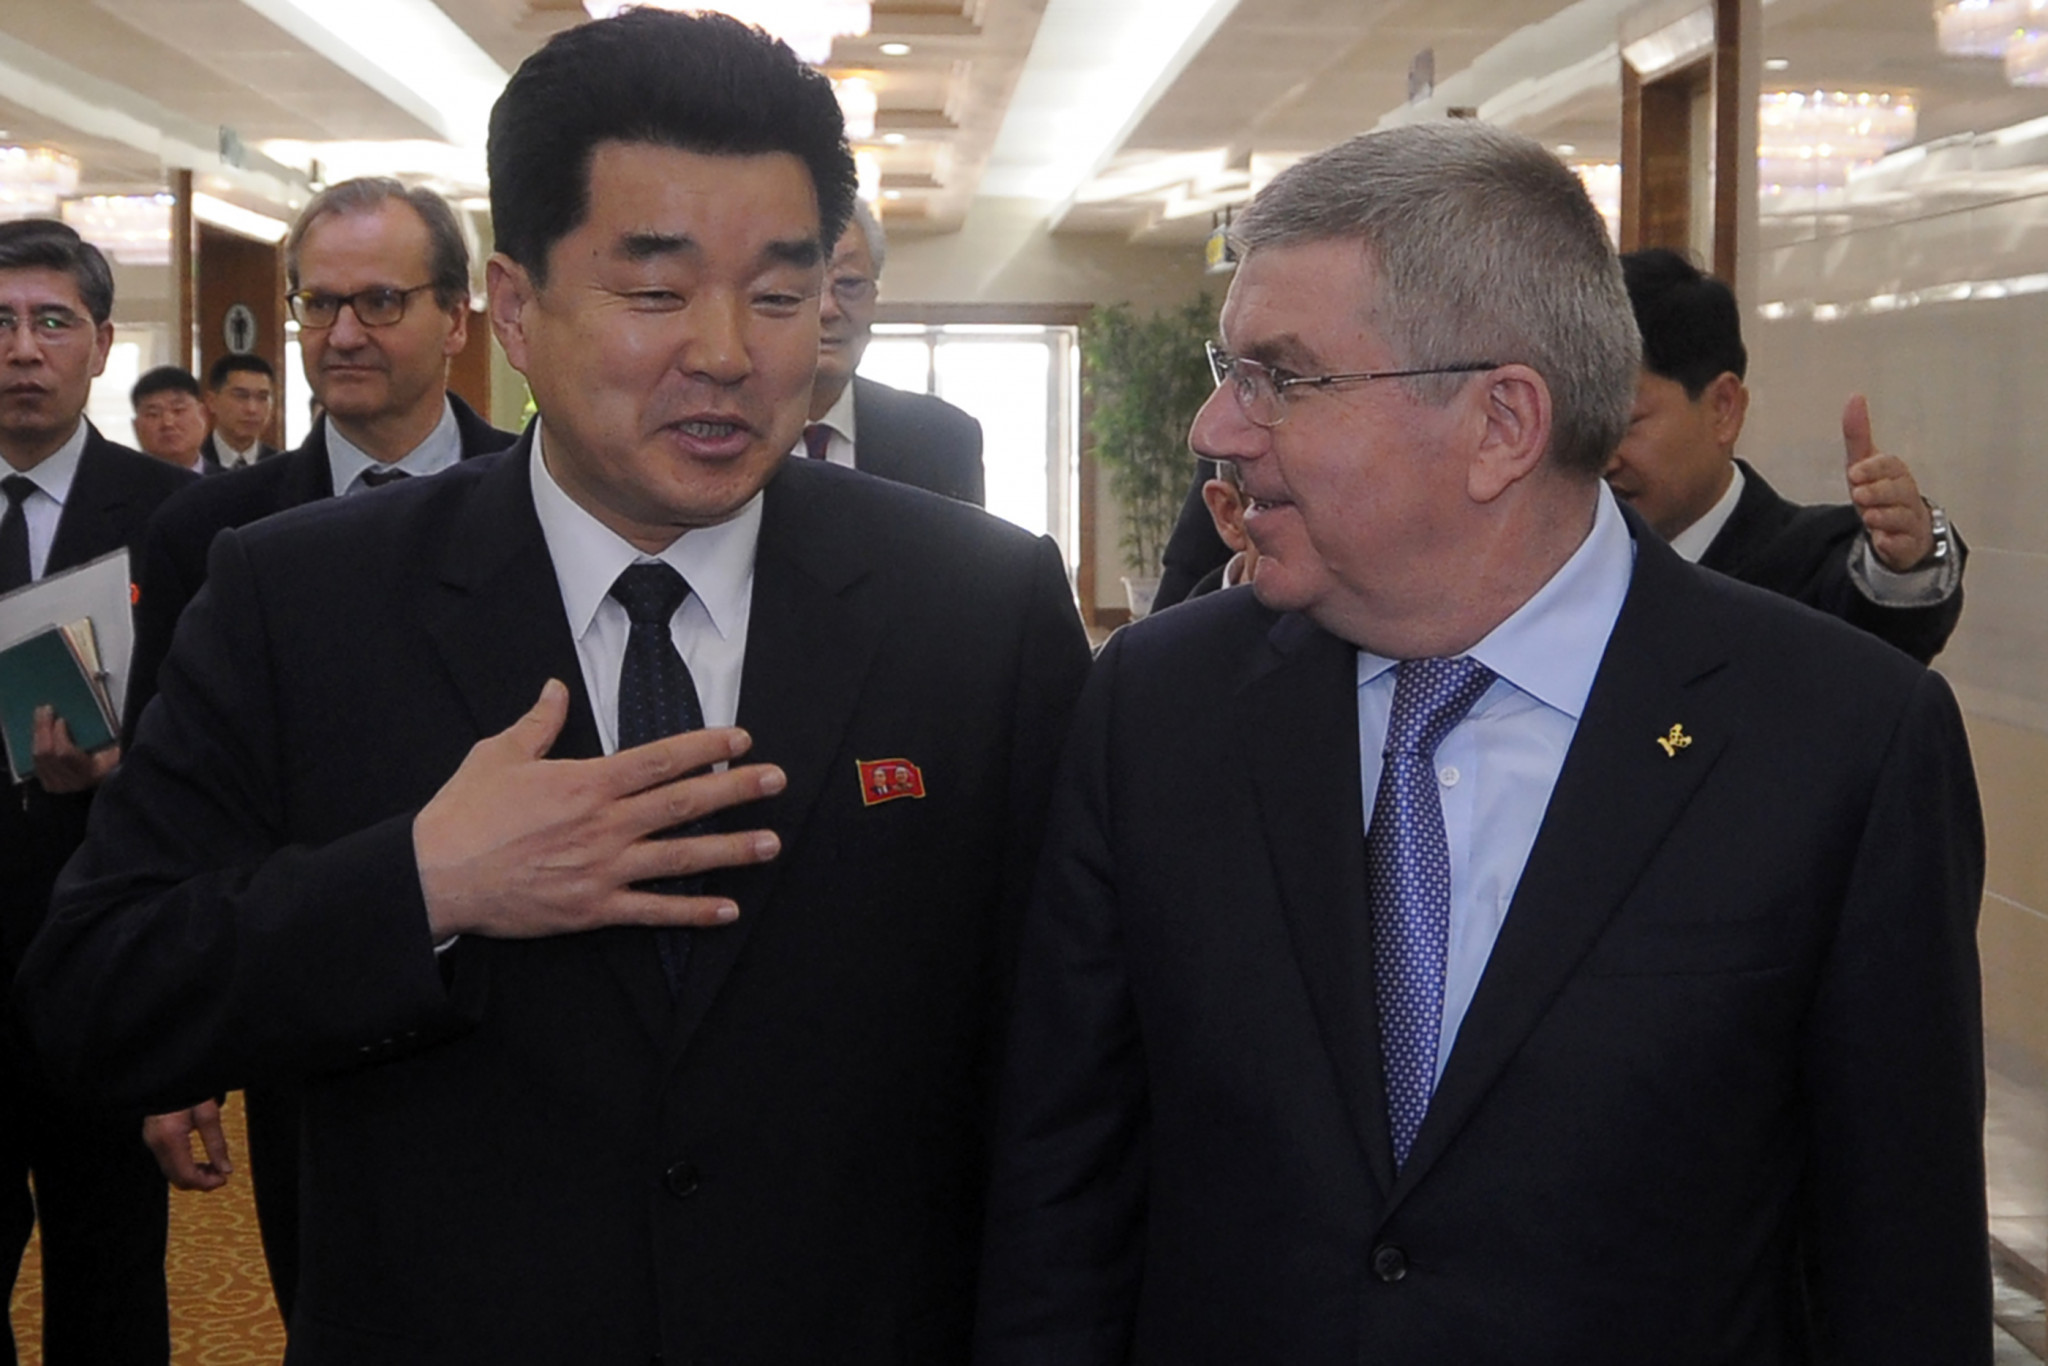 Thomas Bach speaks with Kim Il Guk, North Korea's Minister of Physical Culture and Sports, in Pyongyang today ©Getty Images